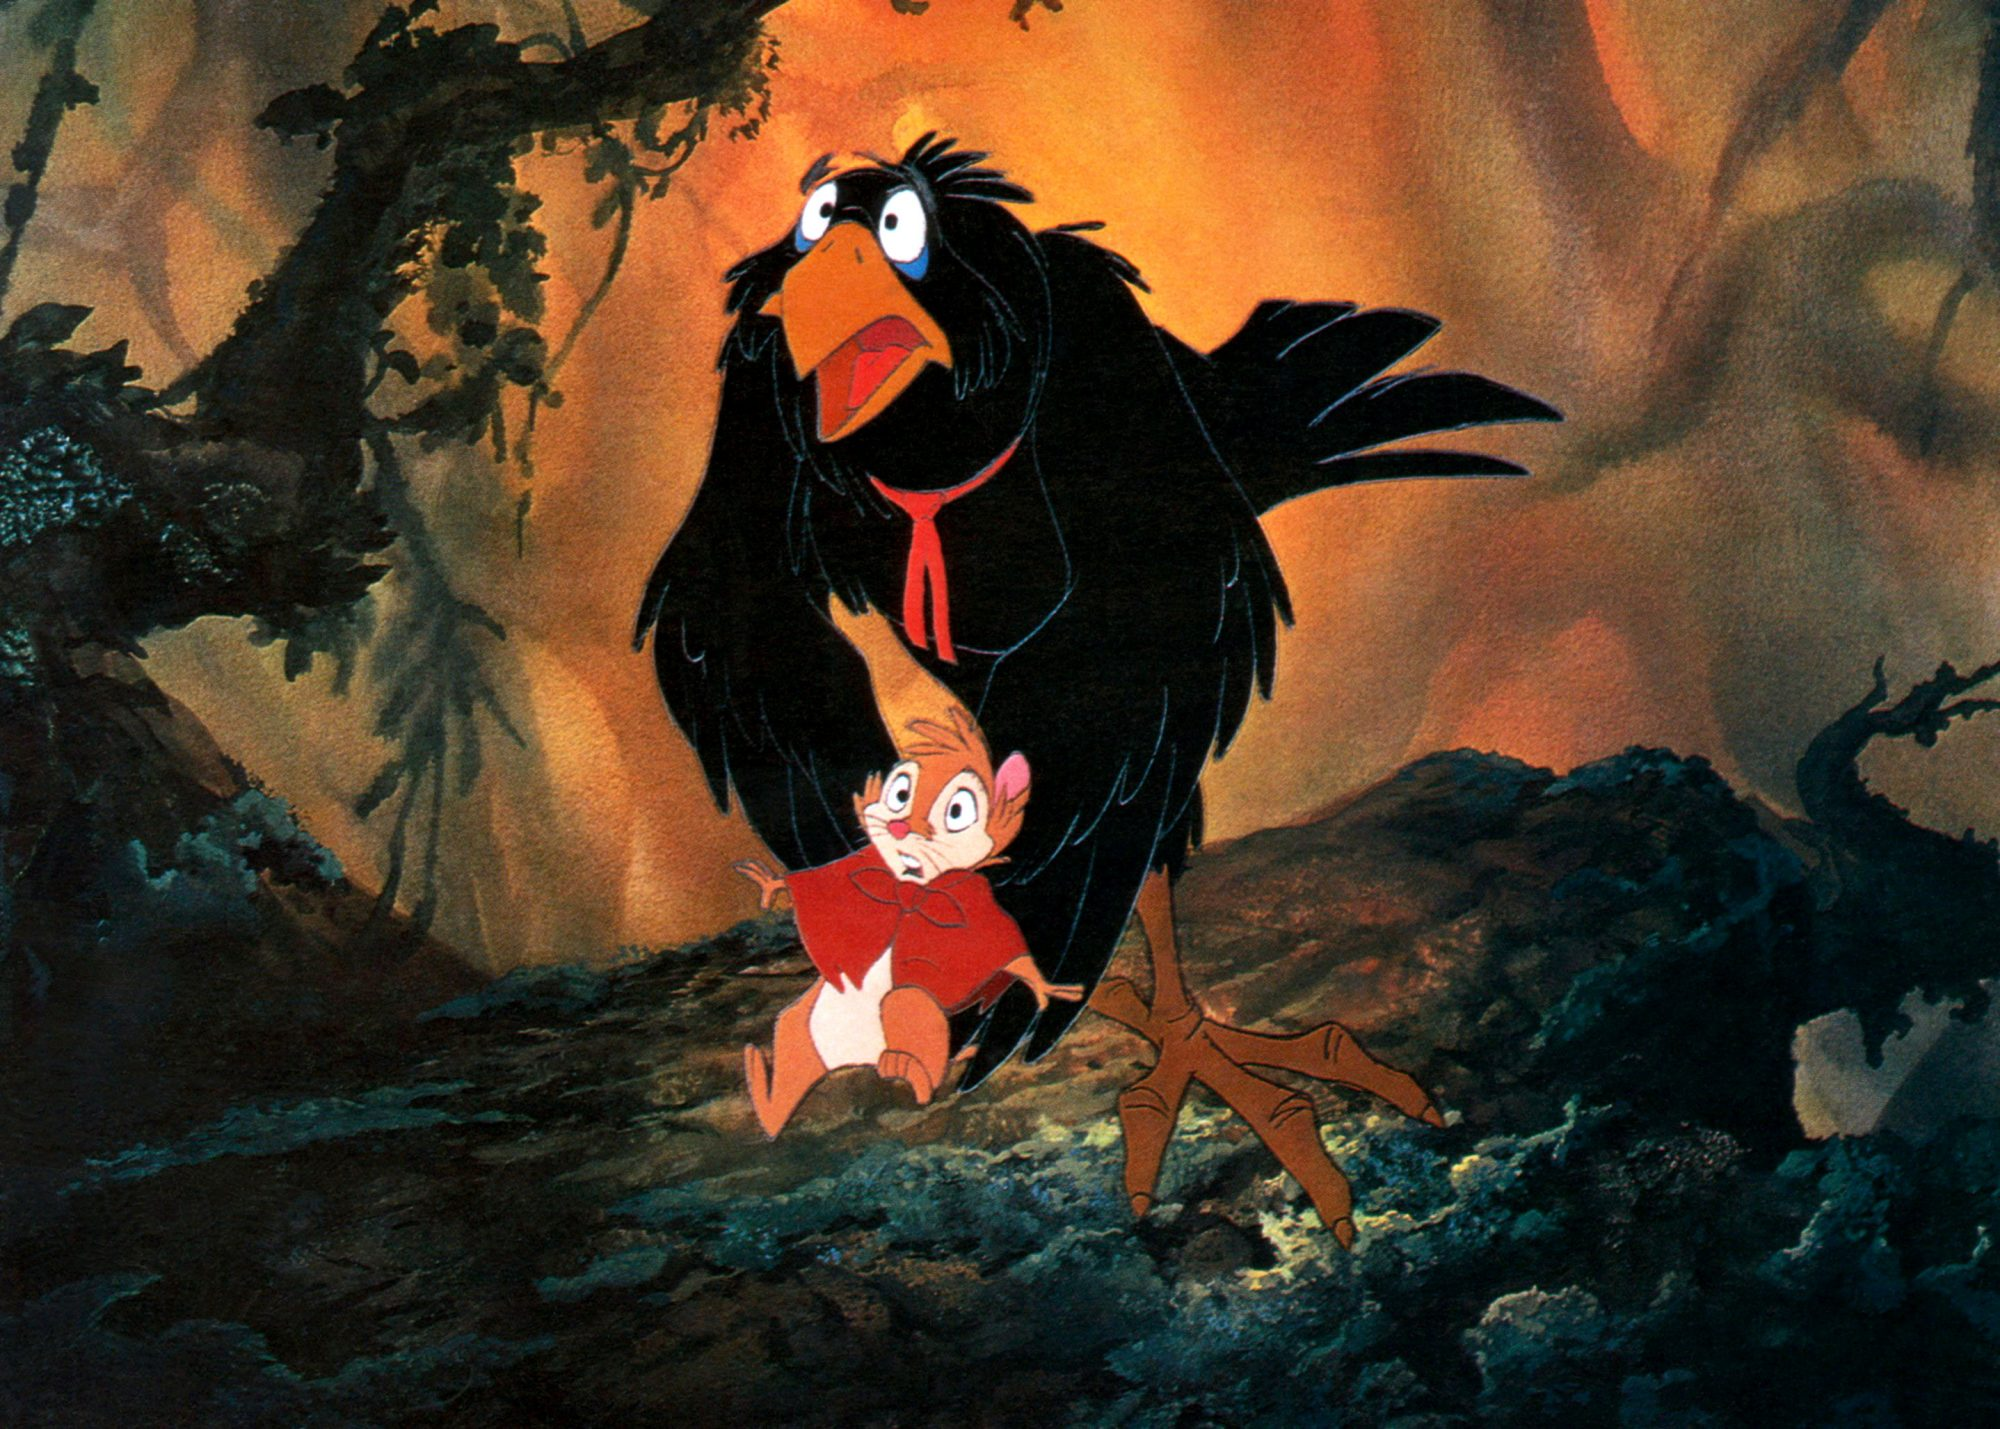 THE SECRET OF NIMH, Mrs. Brisby (front), Jeremy, 1982, (c) United Artists/courtesy Everett Collectio